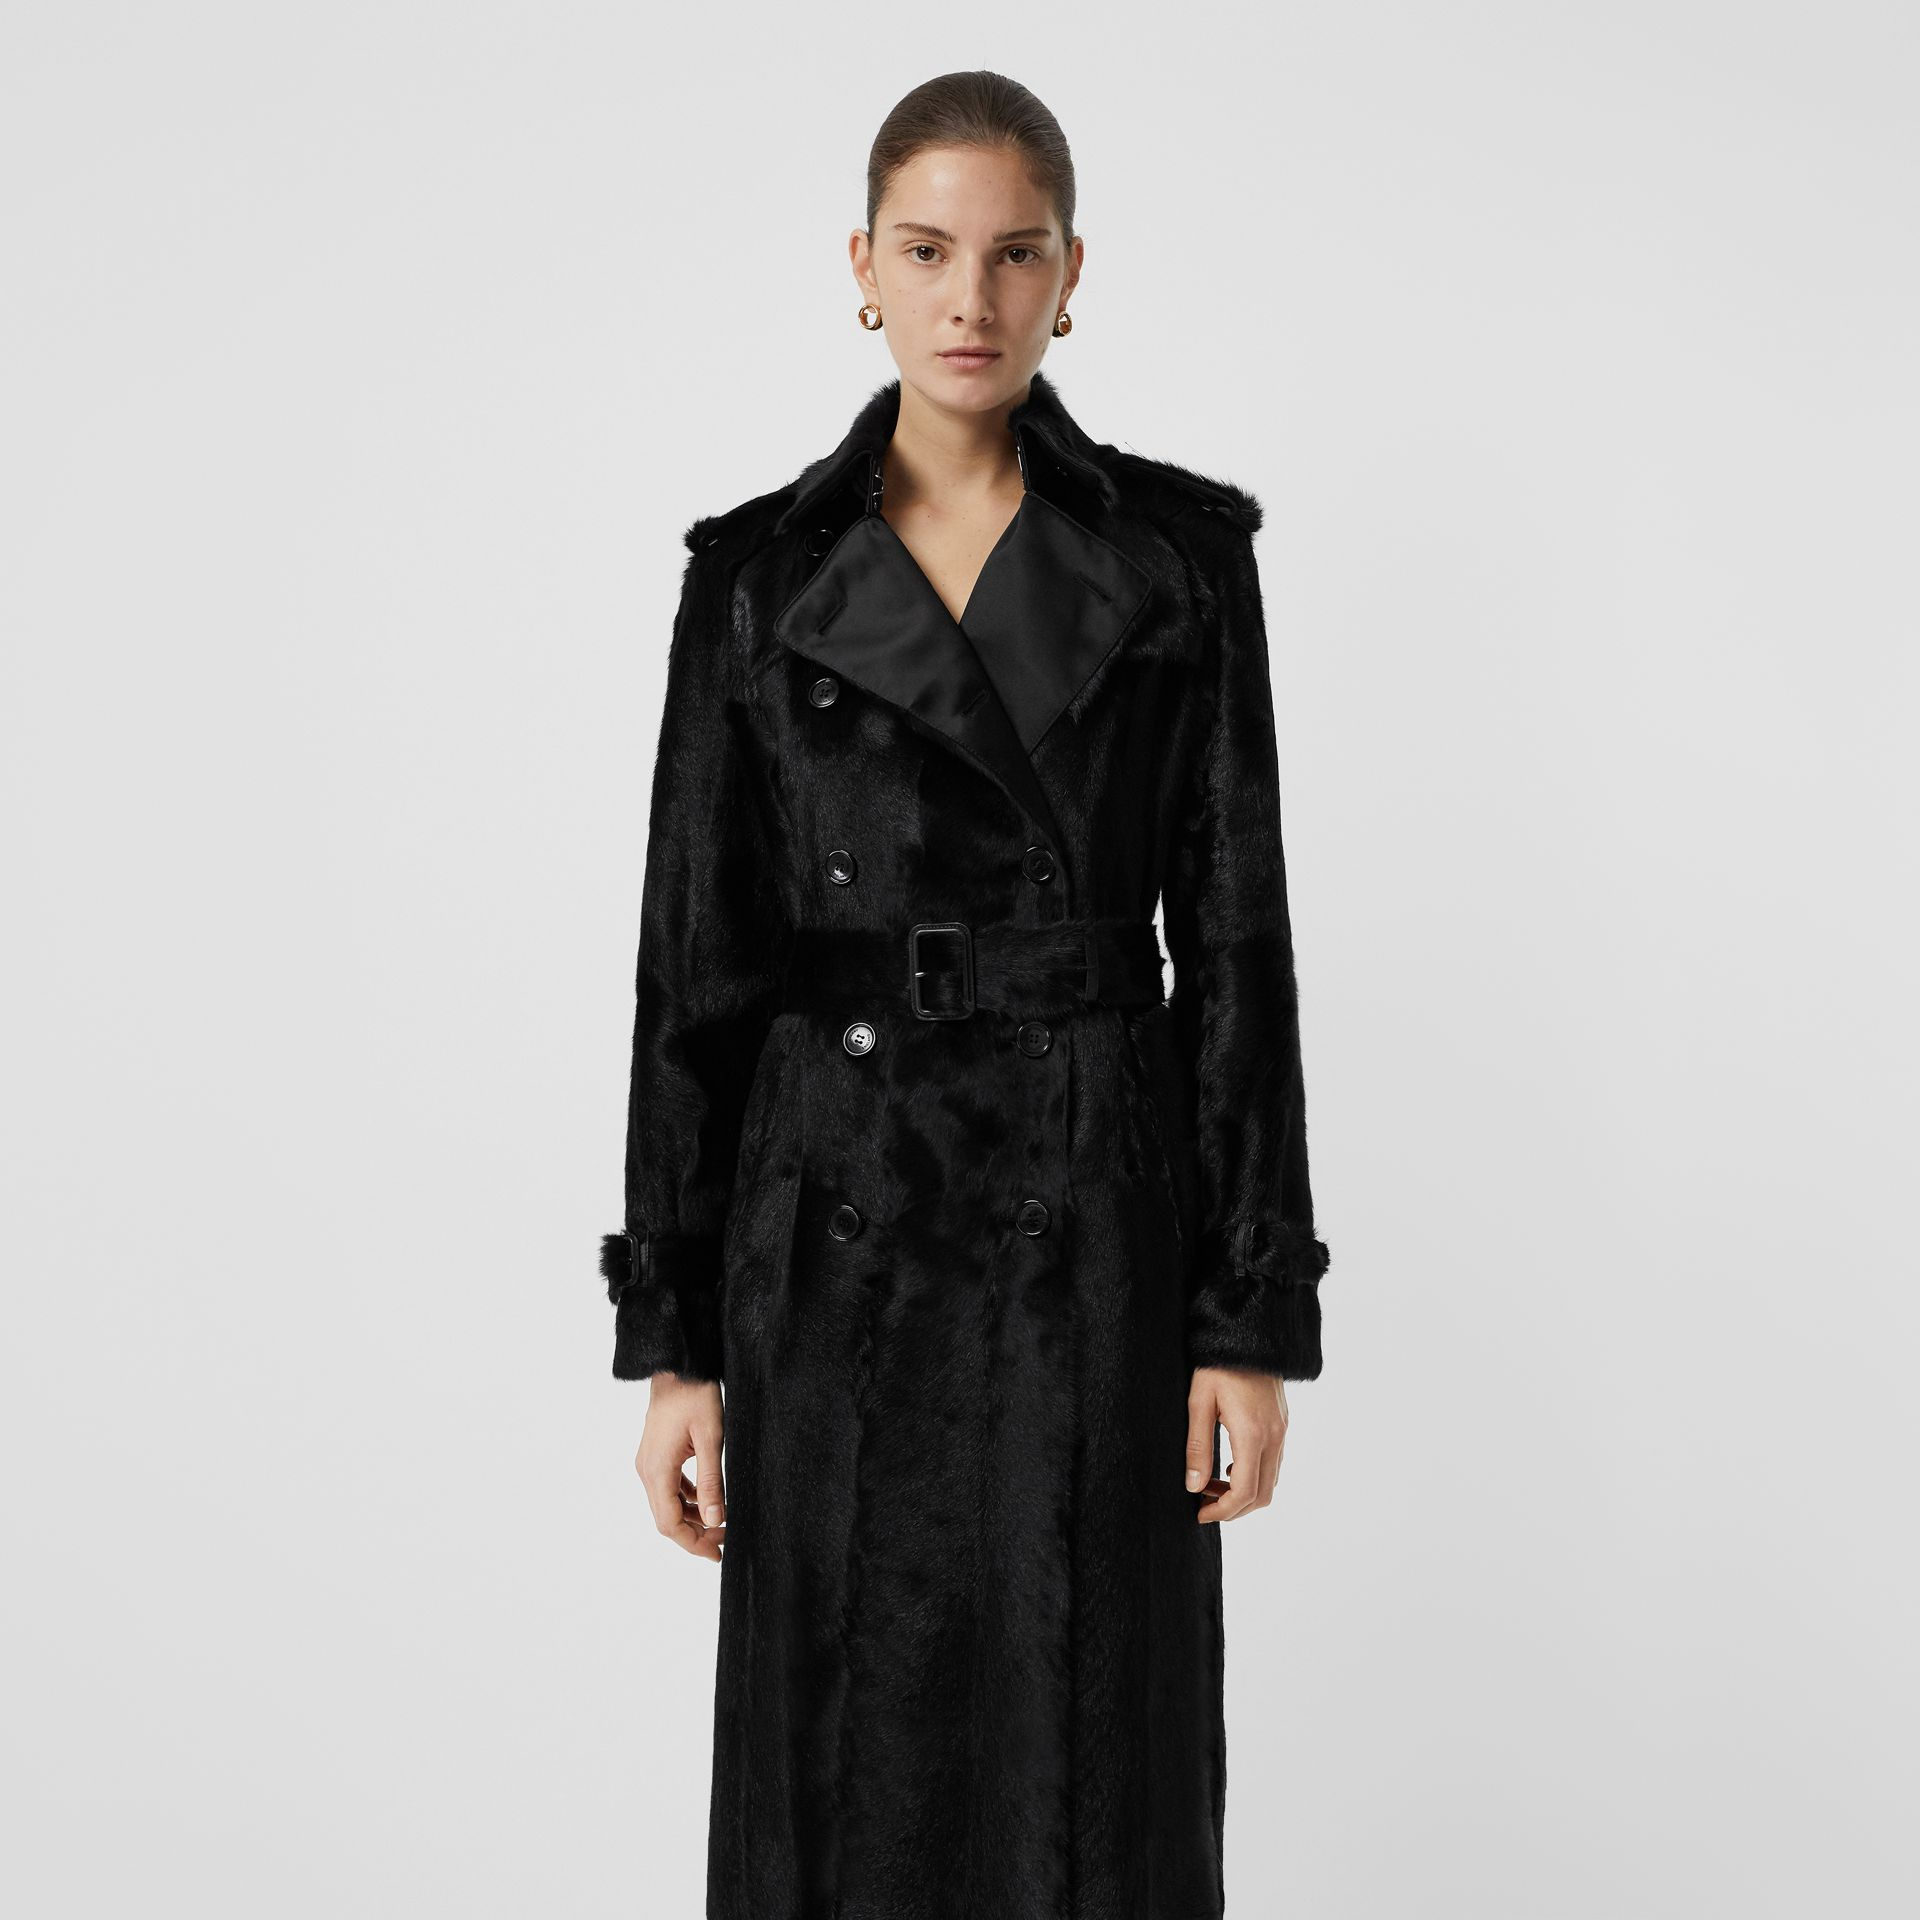 Goat Trench Coat in Black - Women | Burberry United Kingdom - gallery image 7